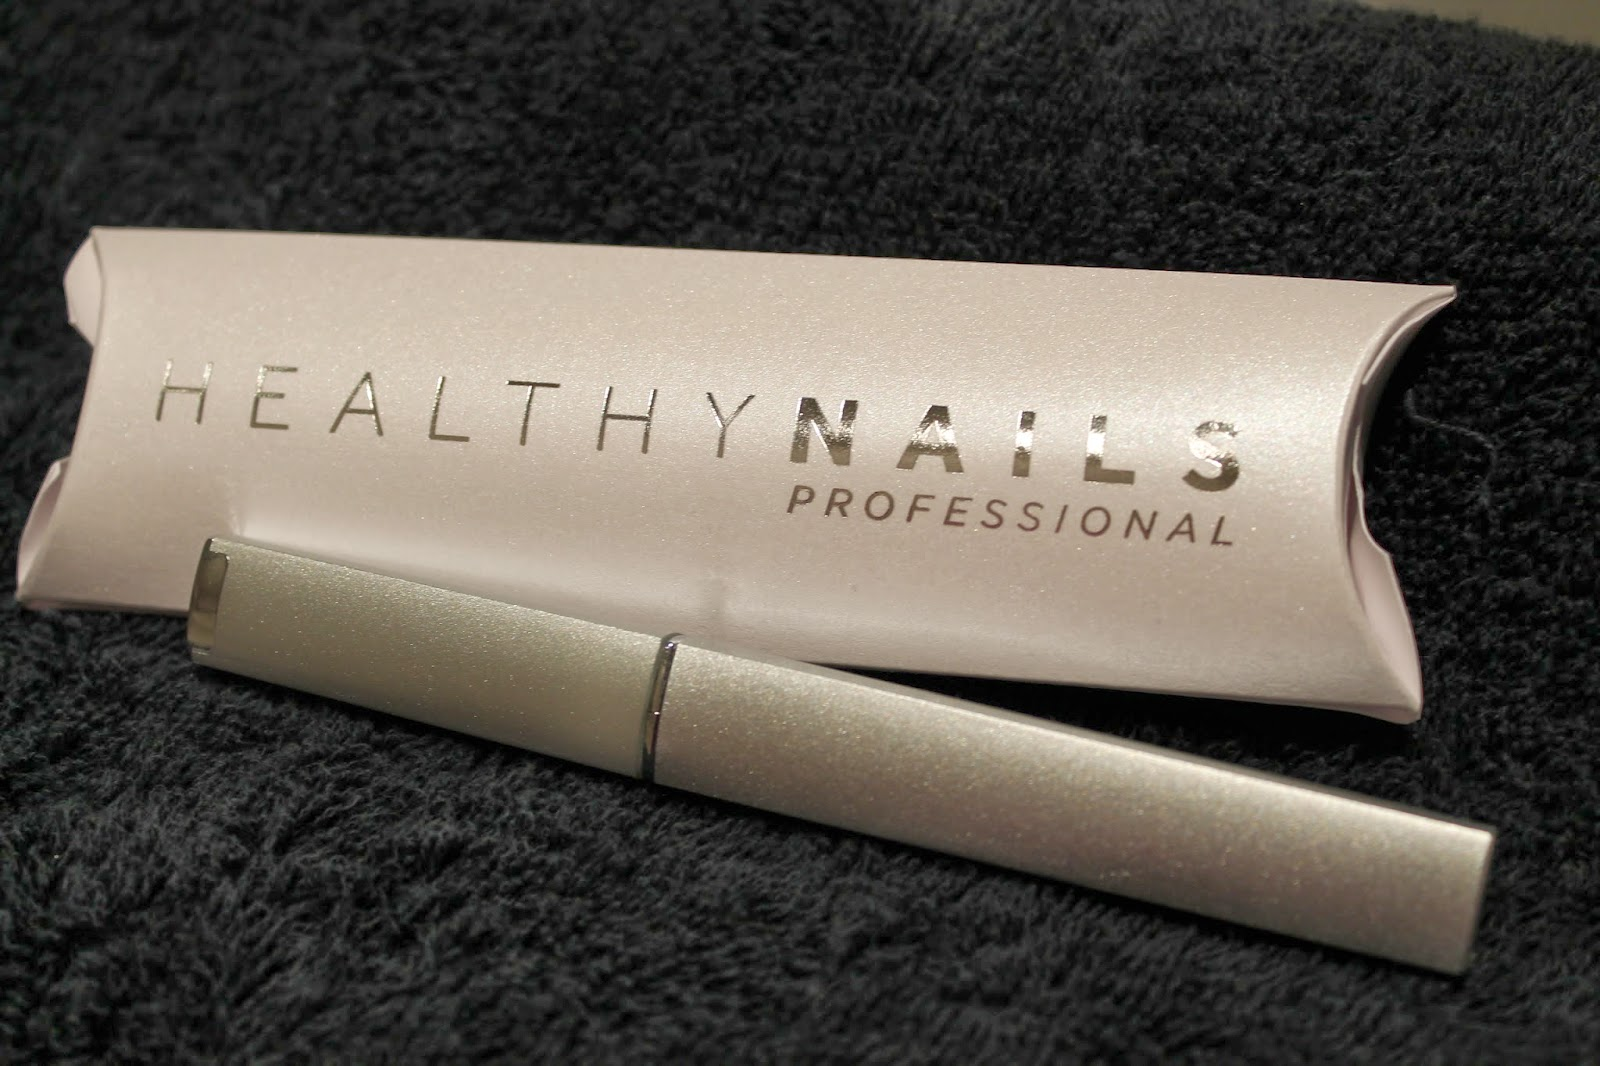 Healthy Nails Crystal Nail File Review